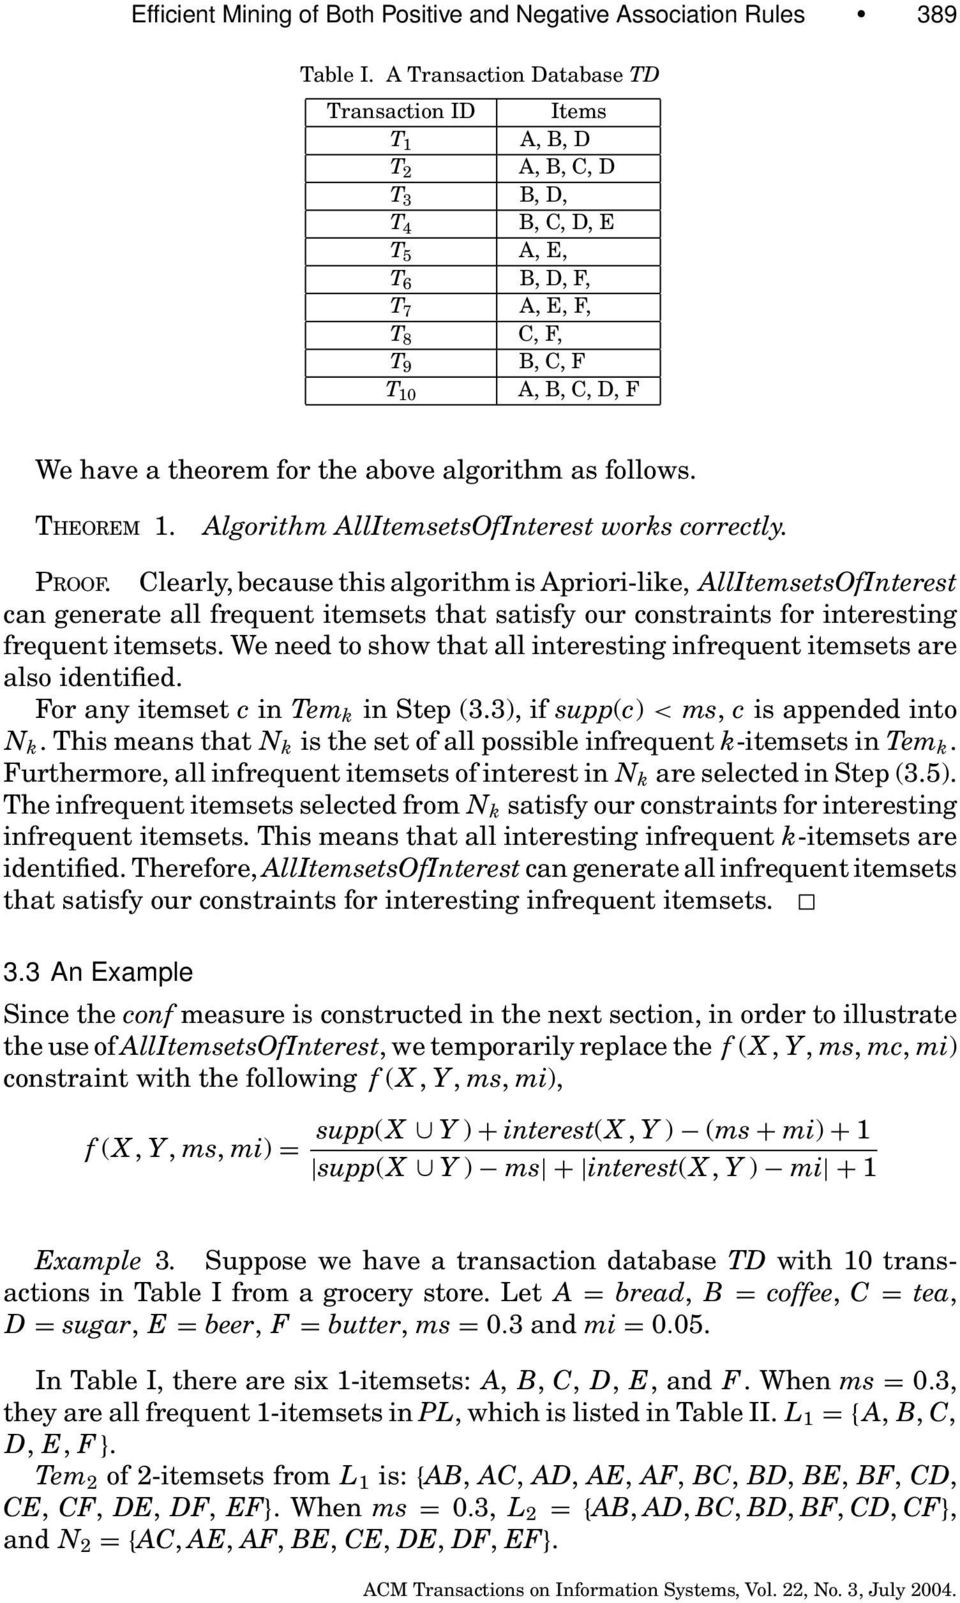 the above algorithm as follows. THEOREM 1. Algorithm AllItemsetsOfInterest works correctly. PROOF.